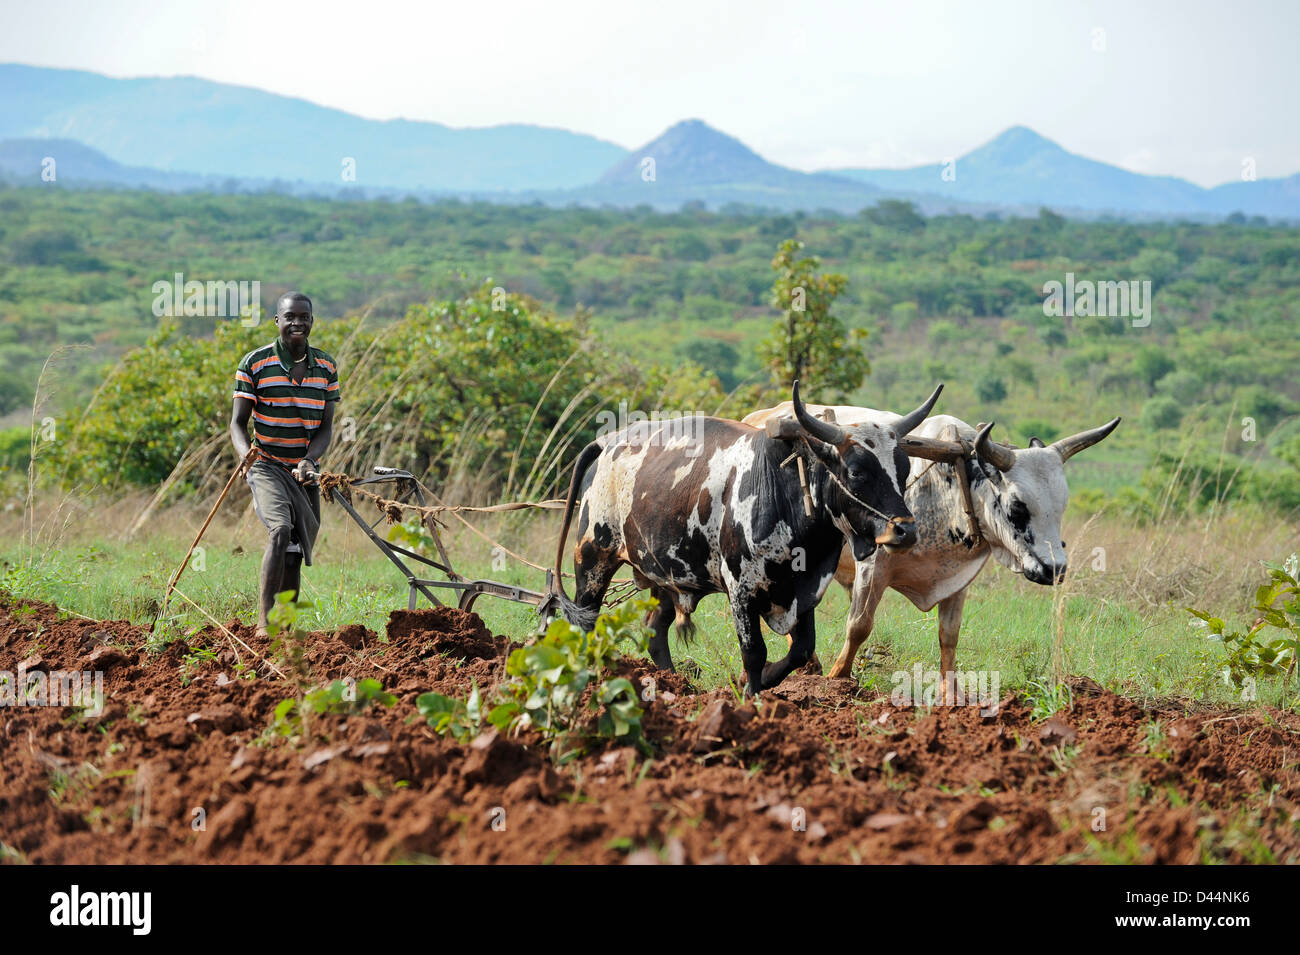 ANGOLA Kwanza Sul, food crops like maize corn or cassava, farming in village near Waku Kungo Stock Photo